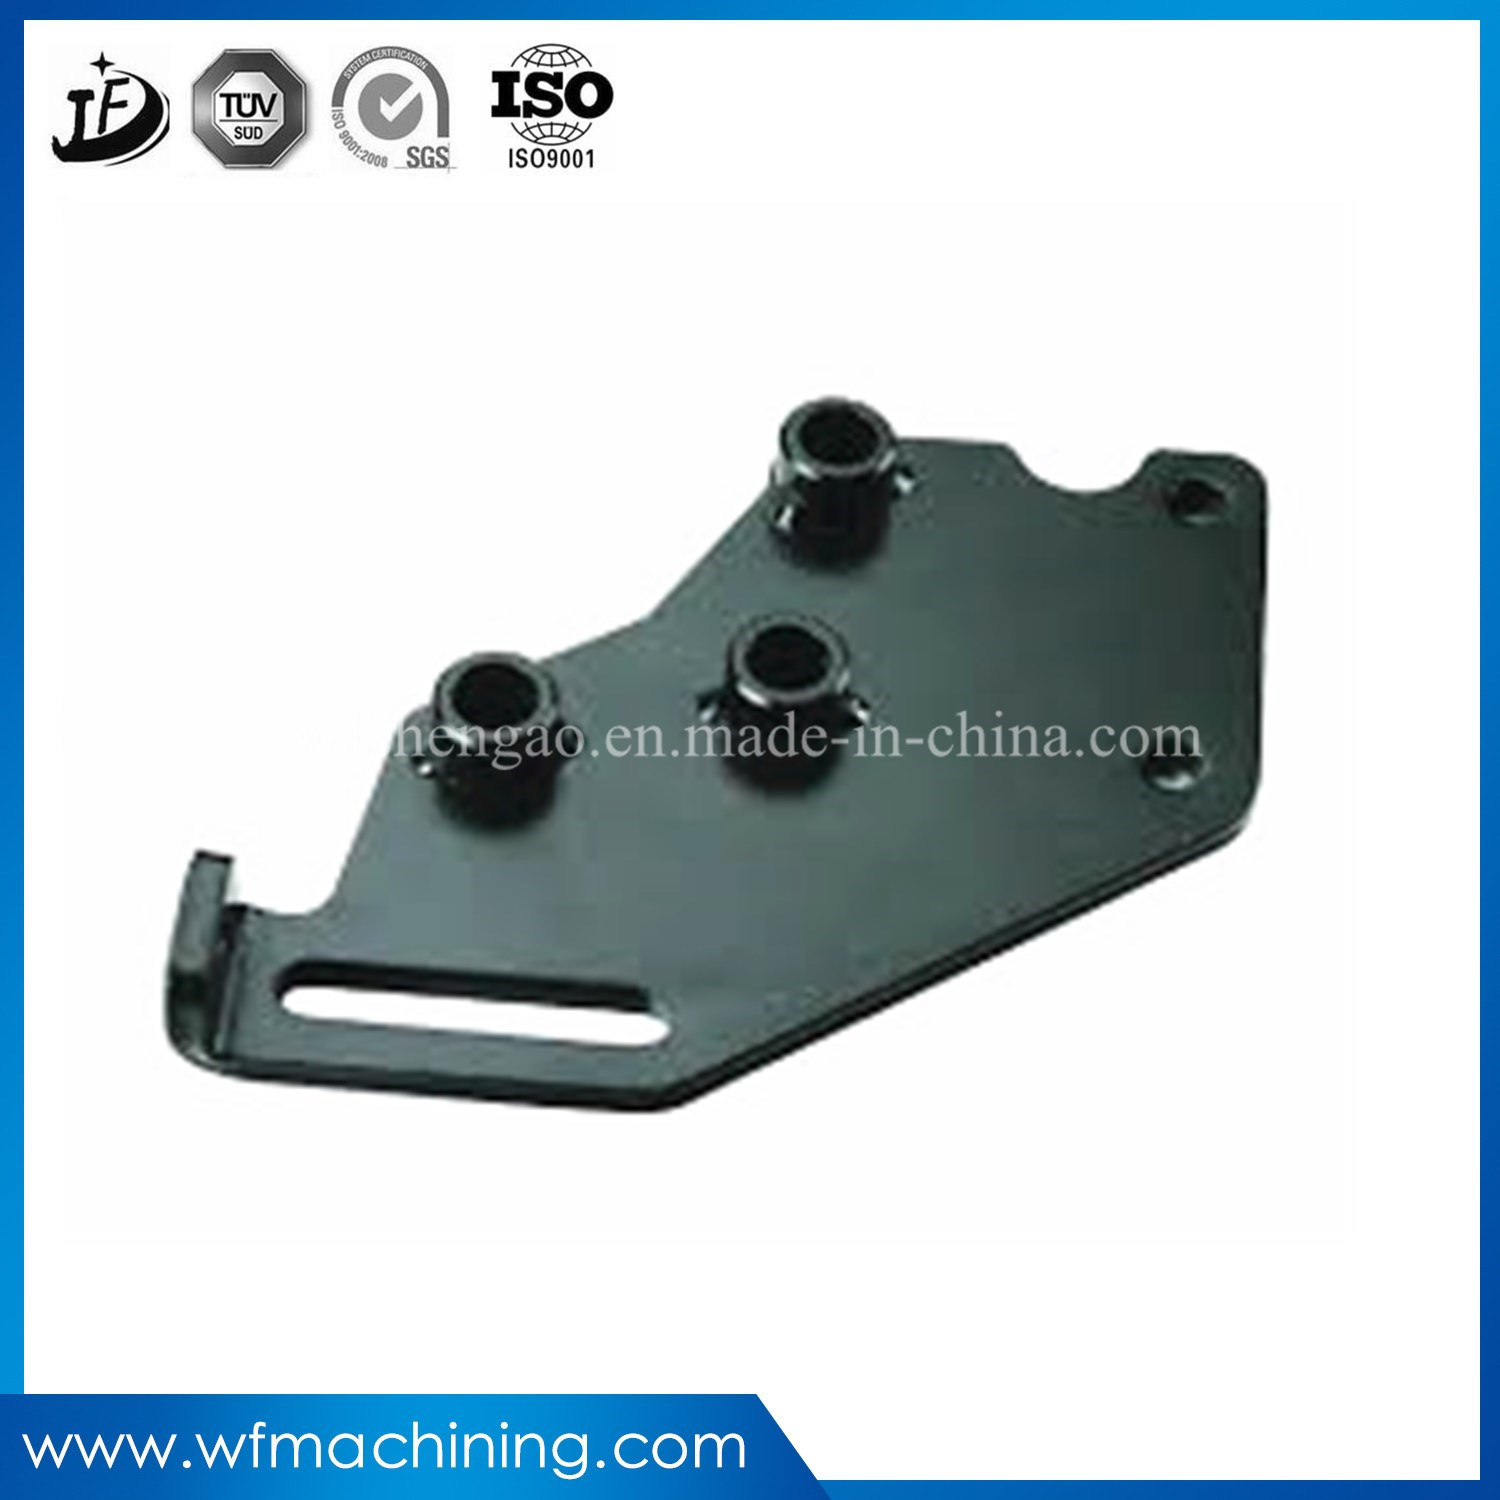 OEM Brass/Copper/Stainless Steel/Aluminum Stamping Parts Hot Stamping Parts Precision Sheet Metal Stamping Parts